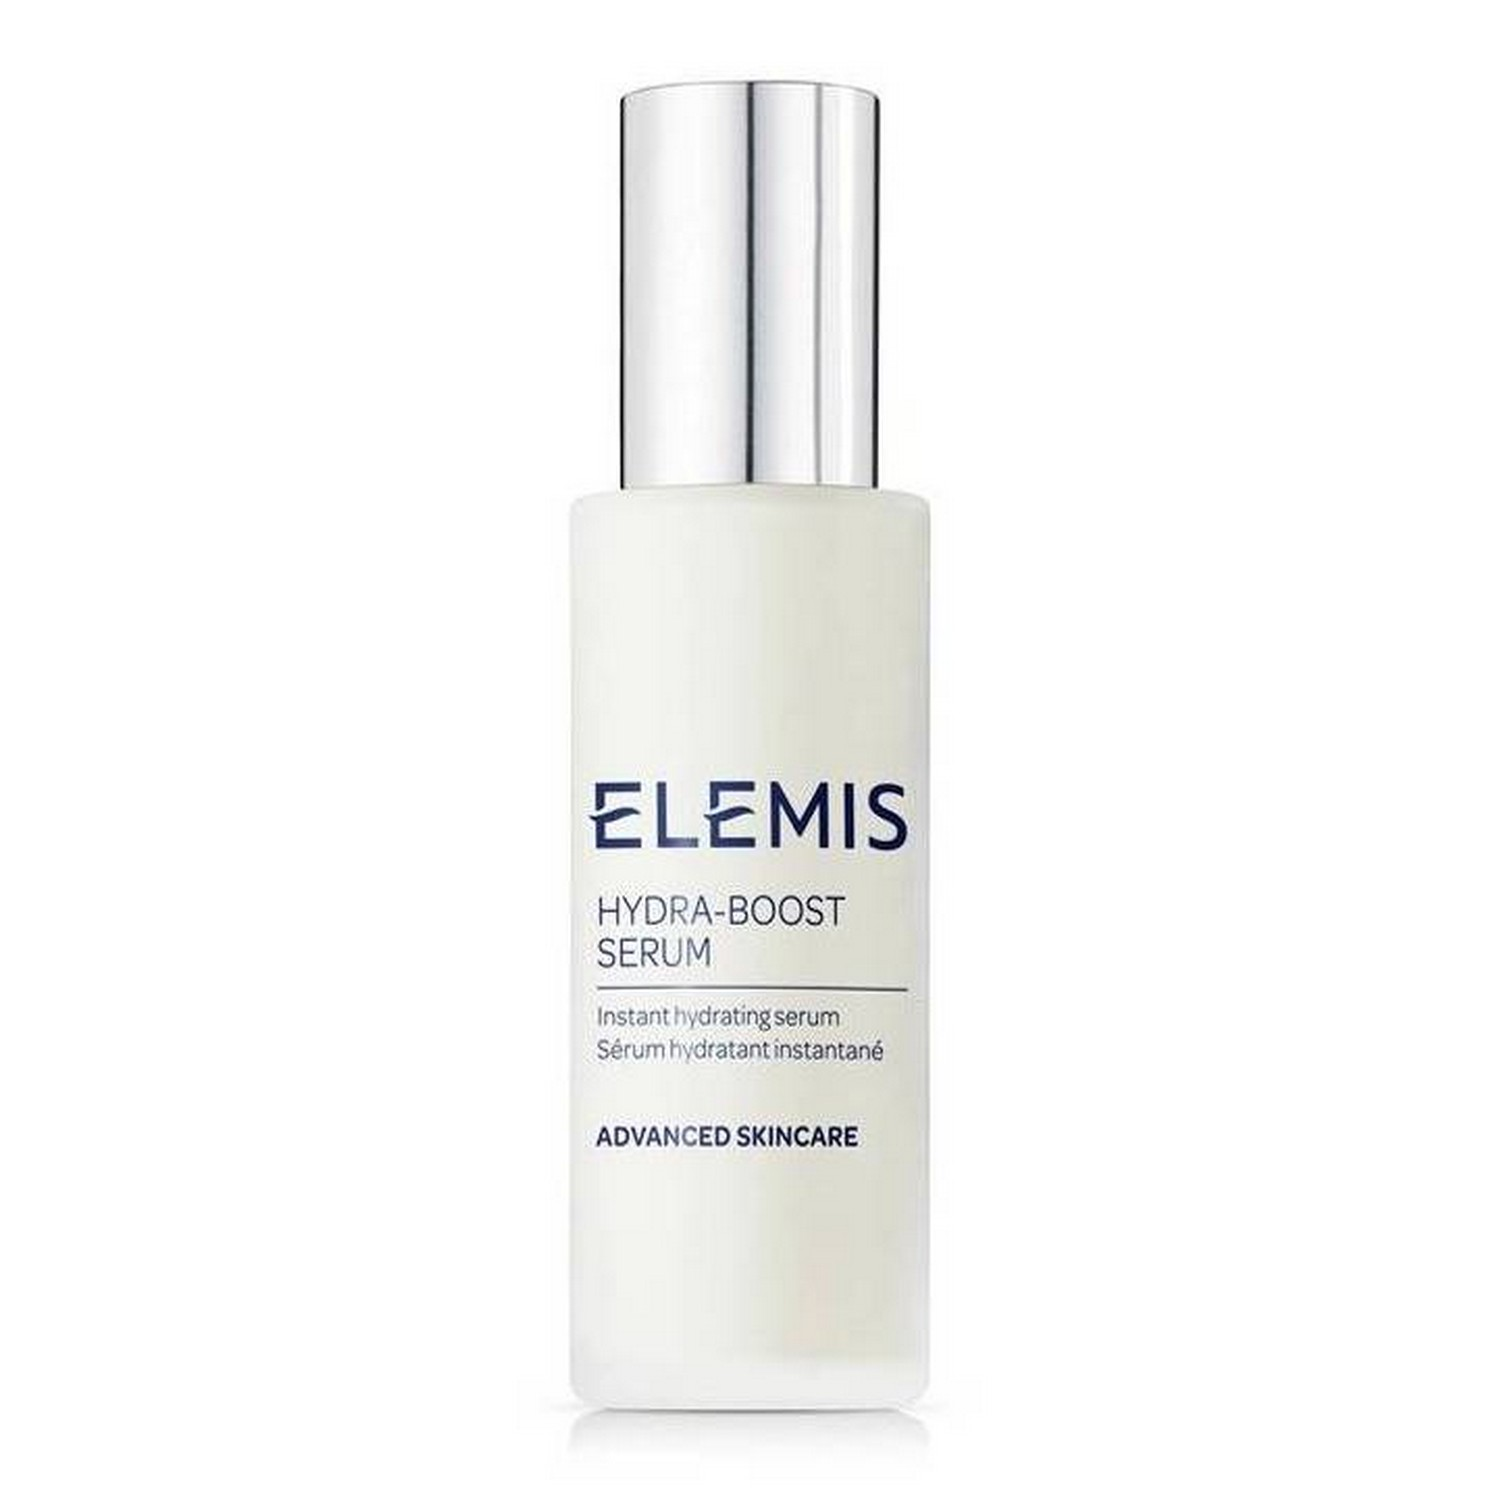 ELEMIS Hydra-Boost Serum (30 ml)